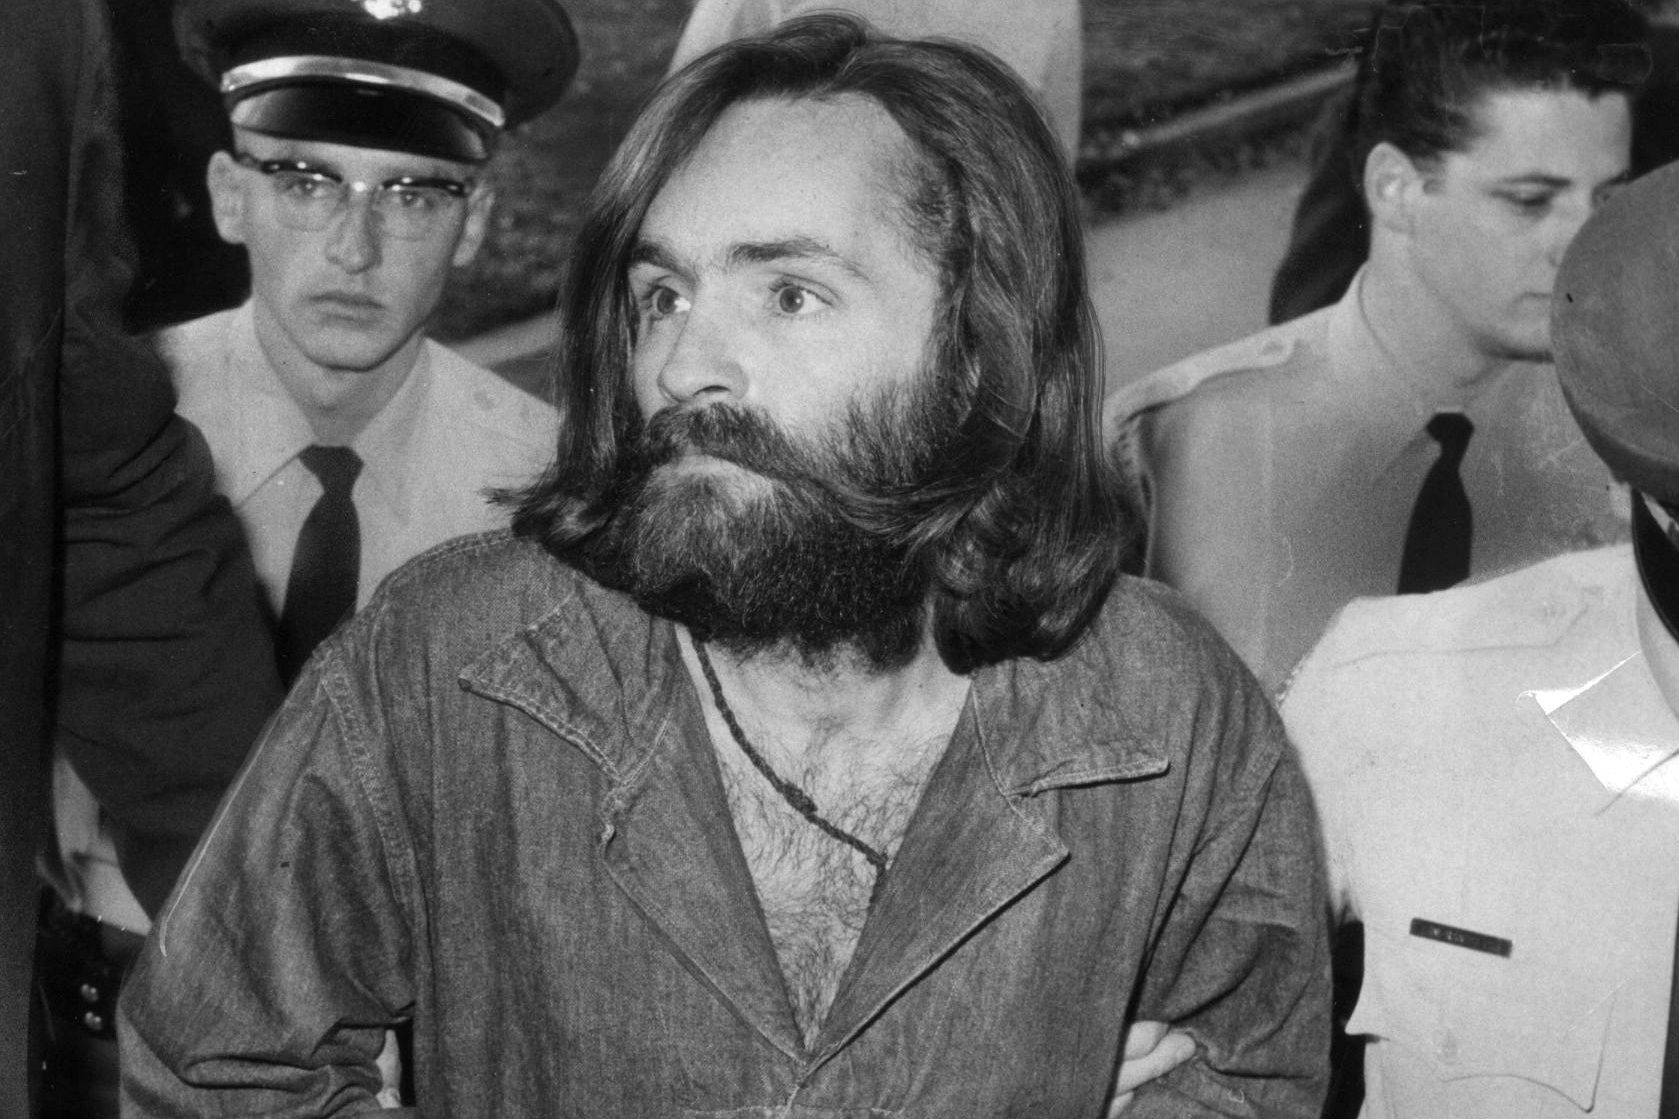 Book Review: HIPPIE CULT LEADER: THE LAST WORDS OF CHARLES MANSON